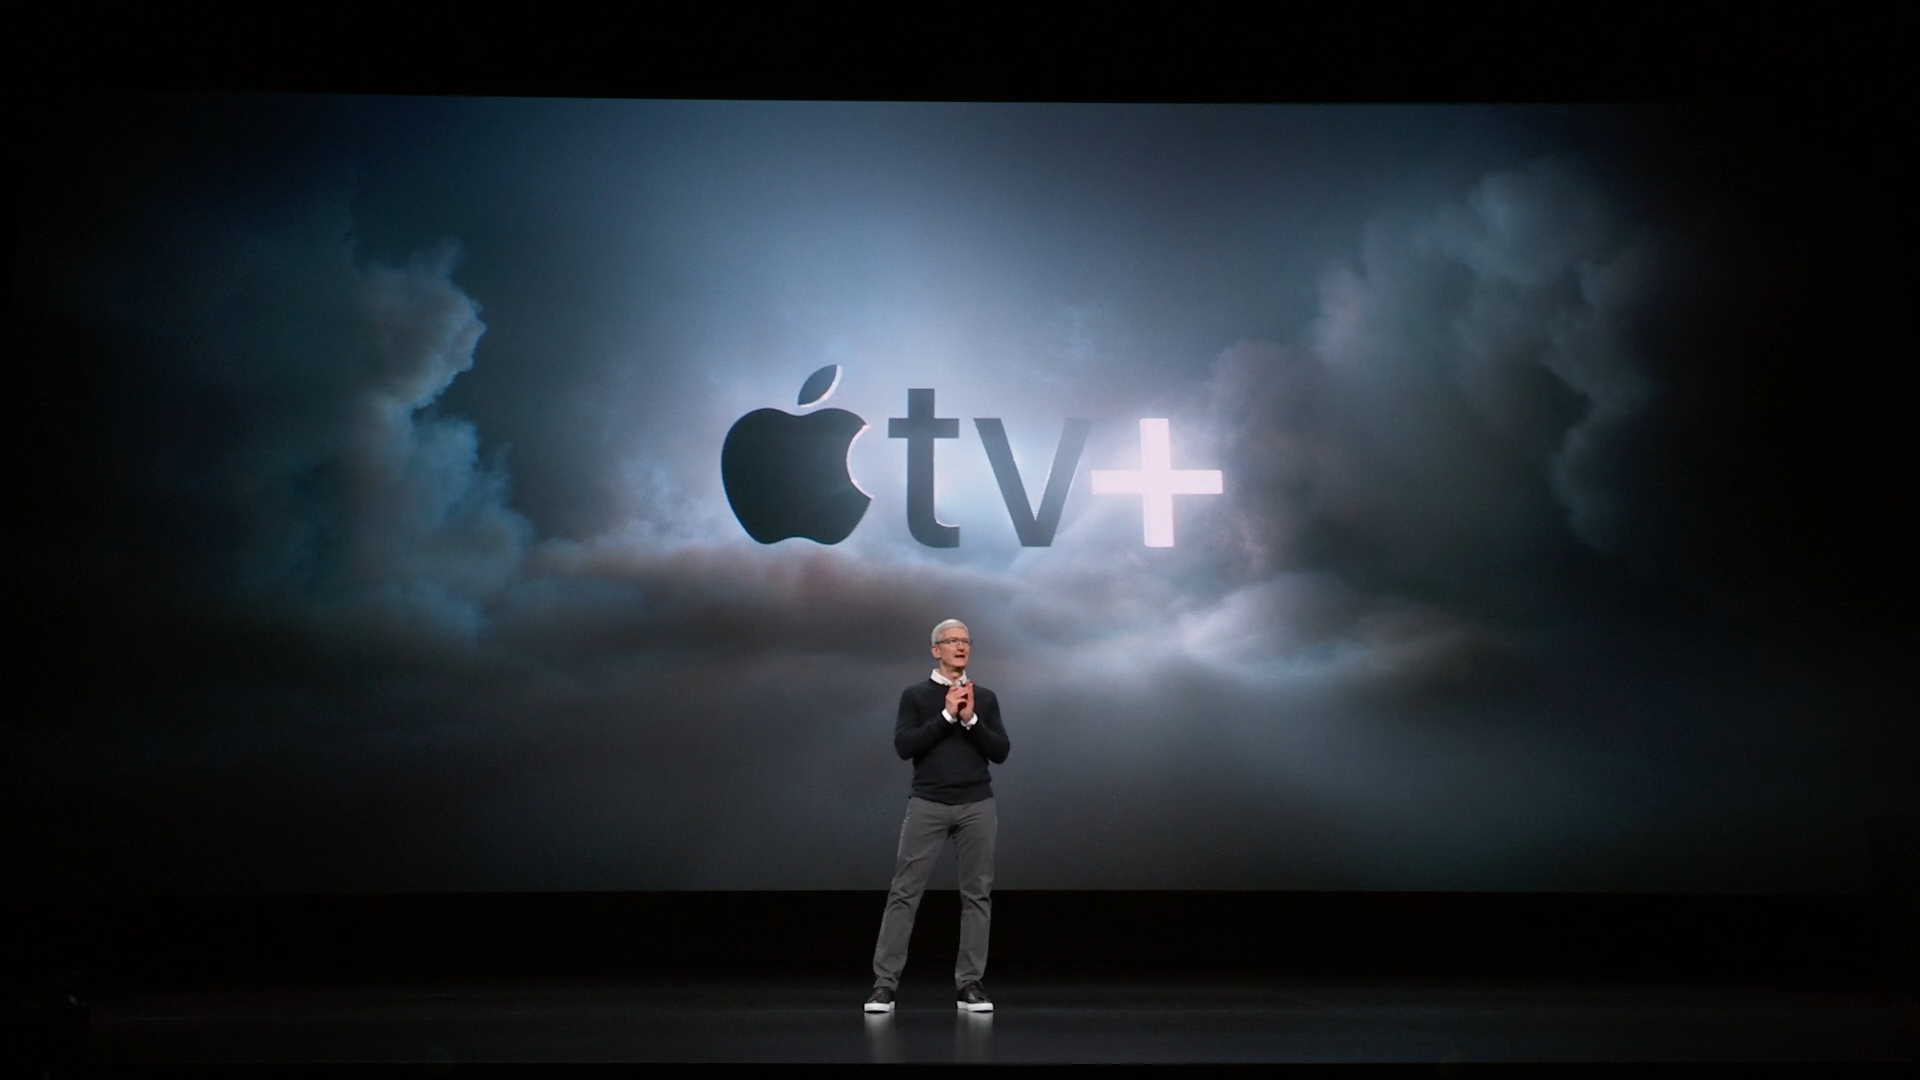 Tim Cook con el logo de Apple TV+ detrás